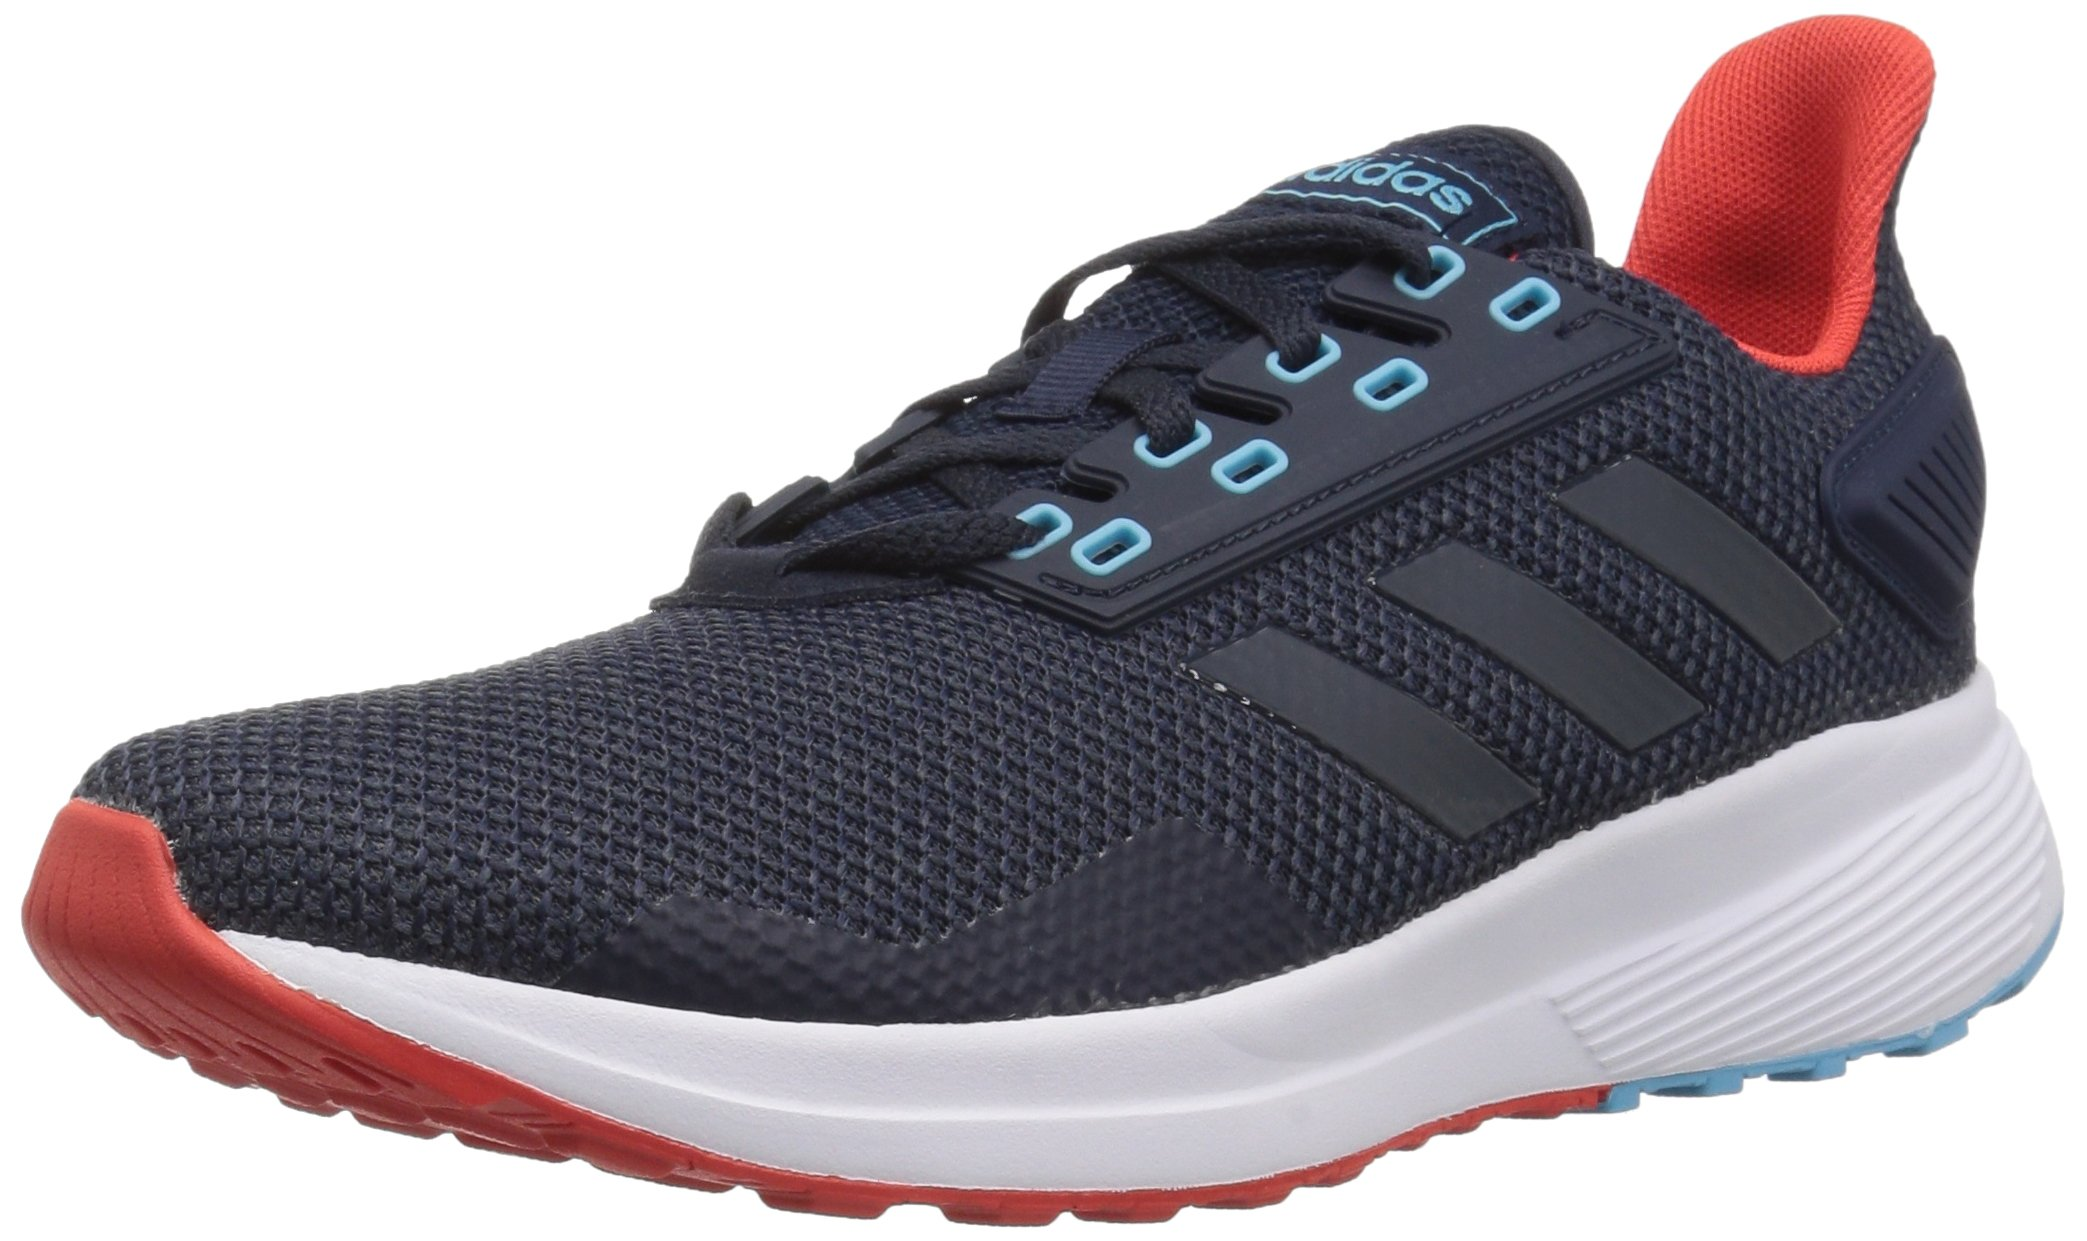 adidas Women's Duramo 9 Running Shoe Legend Ink/Trace Blue, 8 M US by adidas